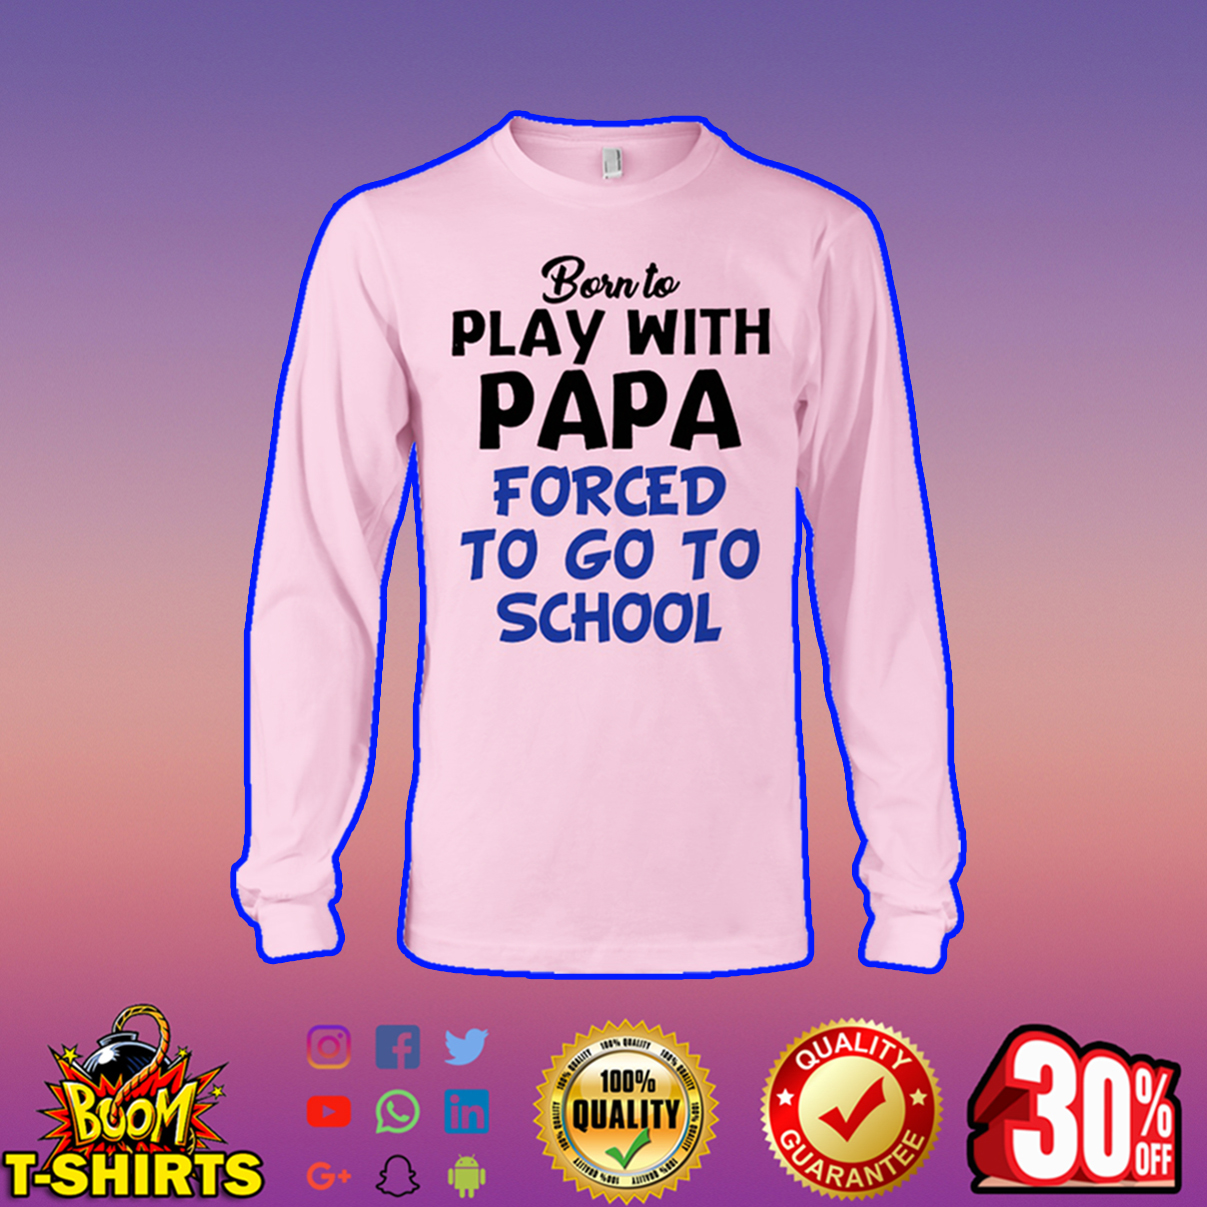 Born to play with papa forced to go to school long sleeve tee